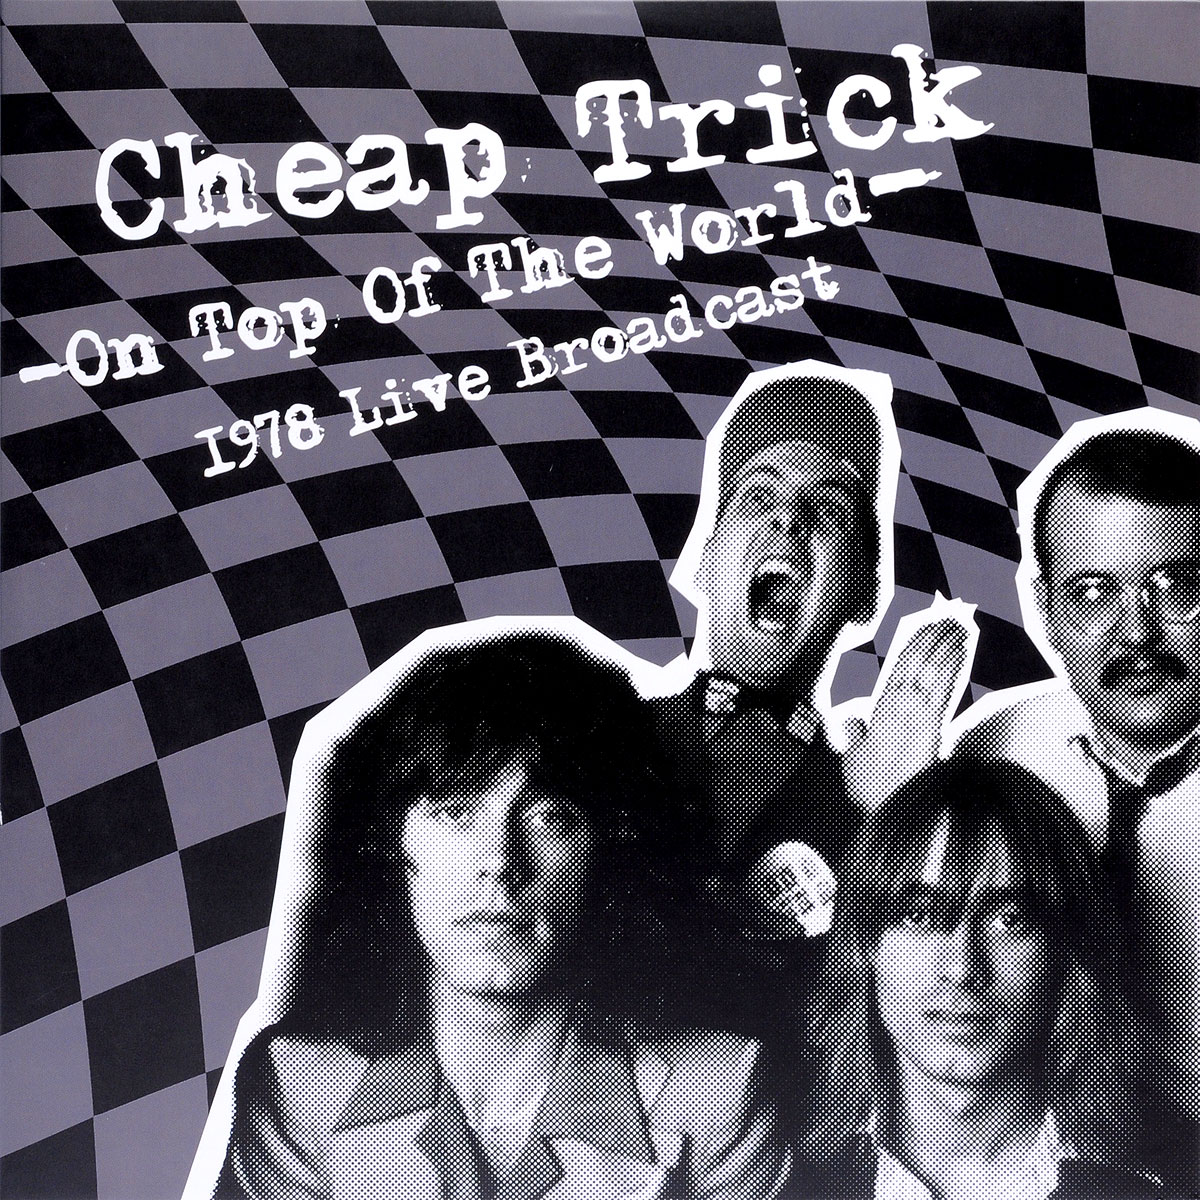 Cheap Trick Cheap Trick. On Top Of The World. 1978 Live Broadcast (2 LP) cheap trick cheap trick on top of the world 1978 live broadcast 2 lp